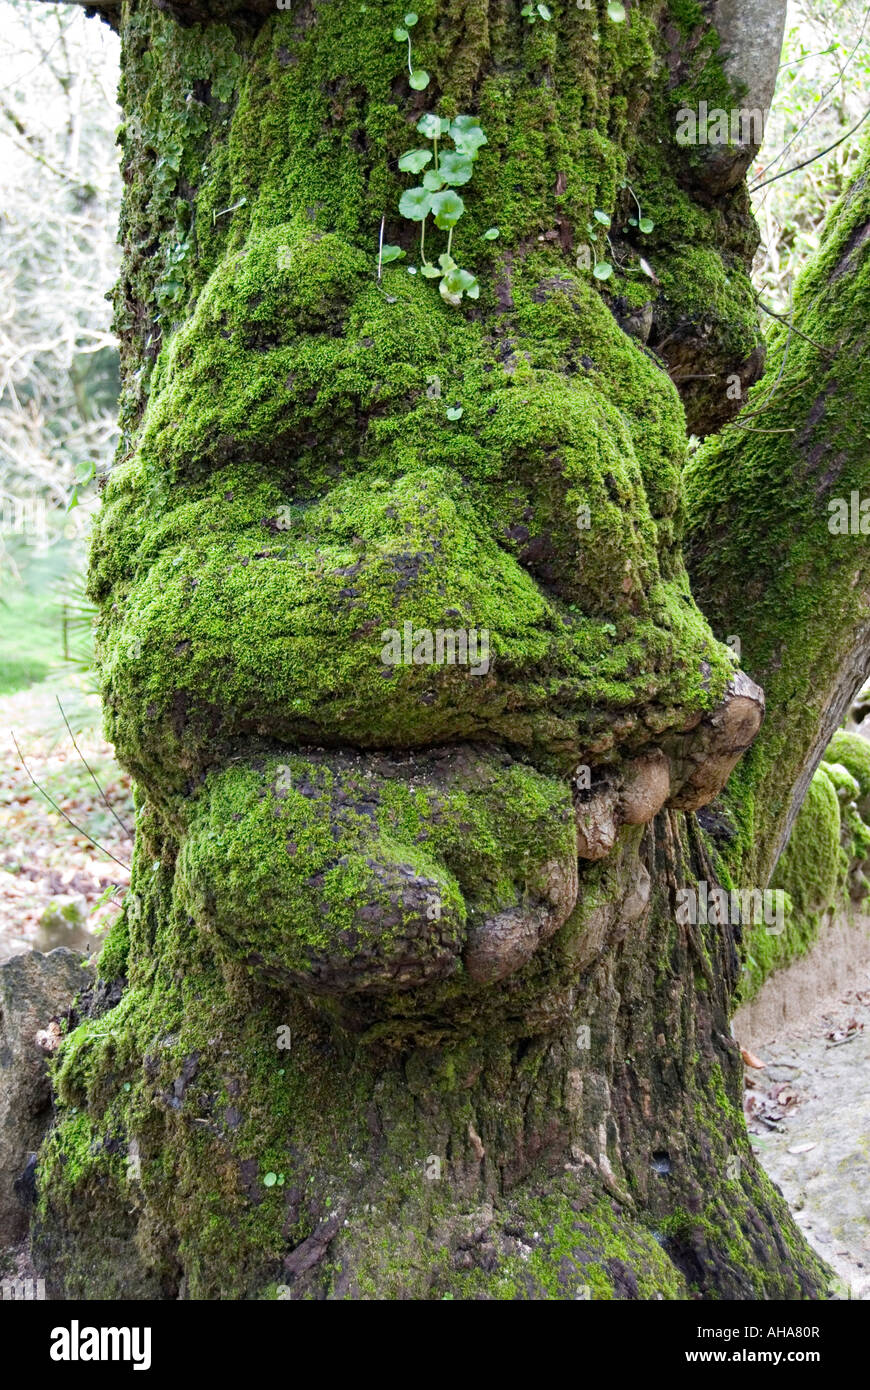 Moss-covered tree bole resembling a grotesque face at the Quinta da Regaleira, Sintra, Portugal - Stock Image